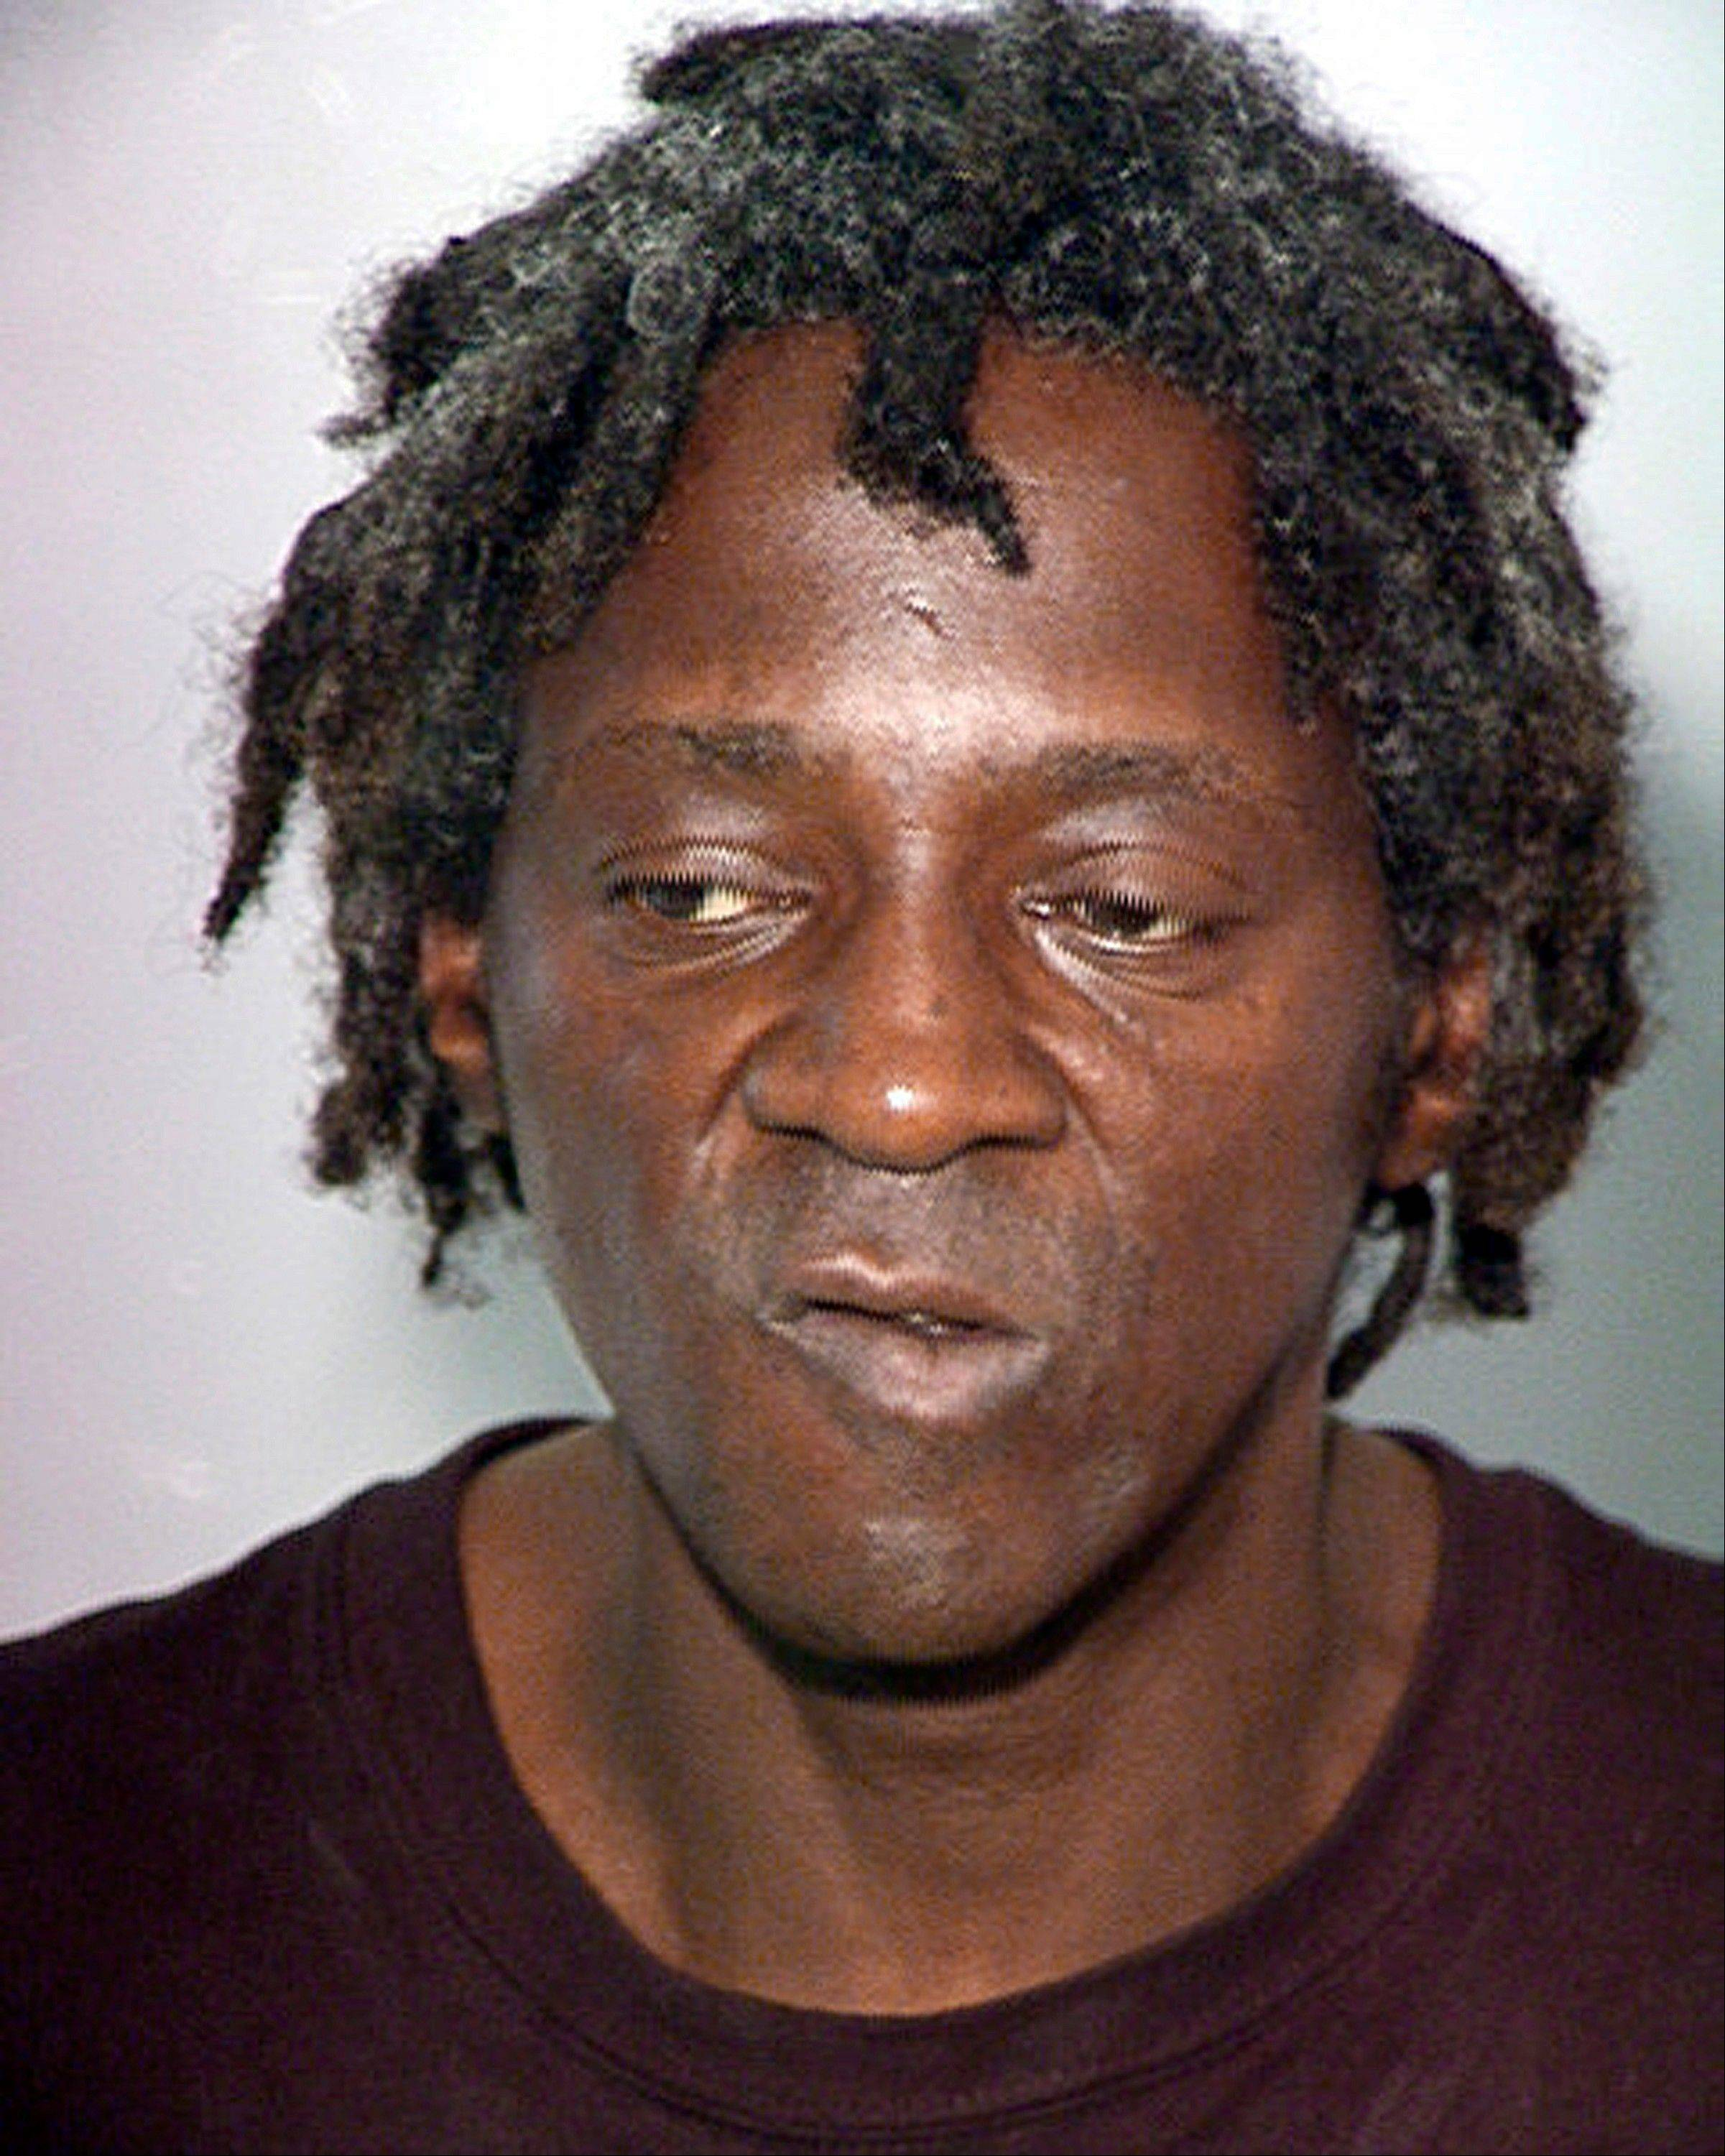 FILE -This Oct. 17, 2012, file photo provided by the Las Vegas Police Department, shows rapper Flavor Flav, whose real name is William Jonathan Drayton Jr. New York State police say rapper and Rock and Roll Hall of Famer was ticketed for speeding and driving without a license while en route to his motherís funeral in suburban New York, Thursday, Jan. 9, 2014.